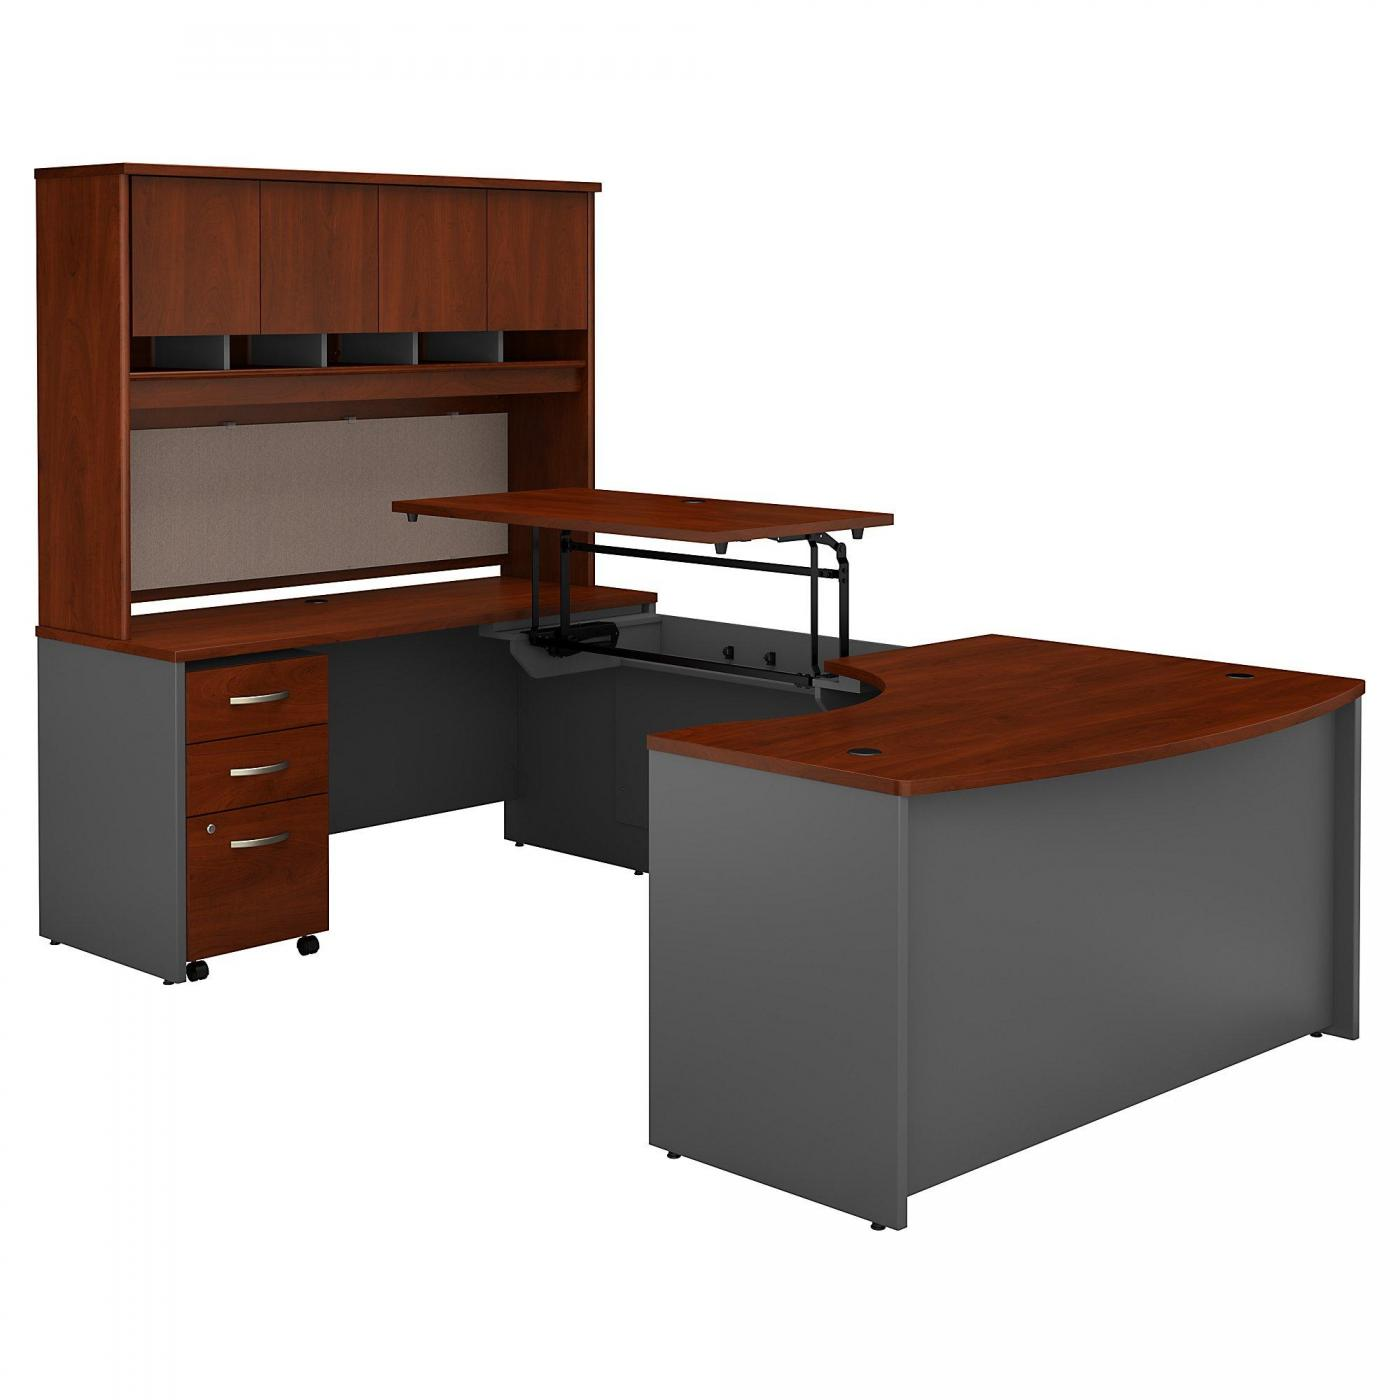 <font color=#c60><b>BUSH BUSINESS FURNITURE SERIES C 60W X 43D RIGHT HAND 3 POSITION SIT TO STAND U SHAPED DESK WITH HUTCH AND MOBILE FILE CABINET. FREE SHIPPING</font></b>